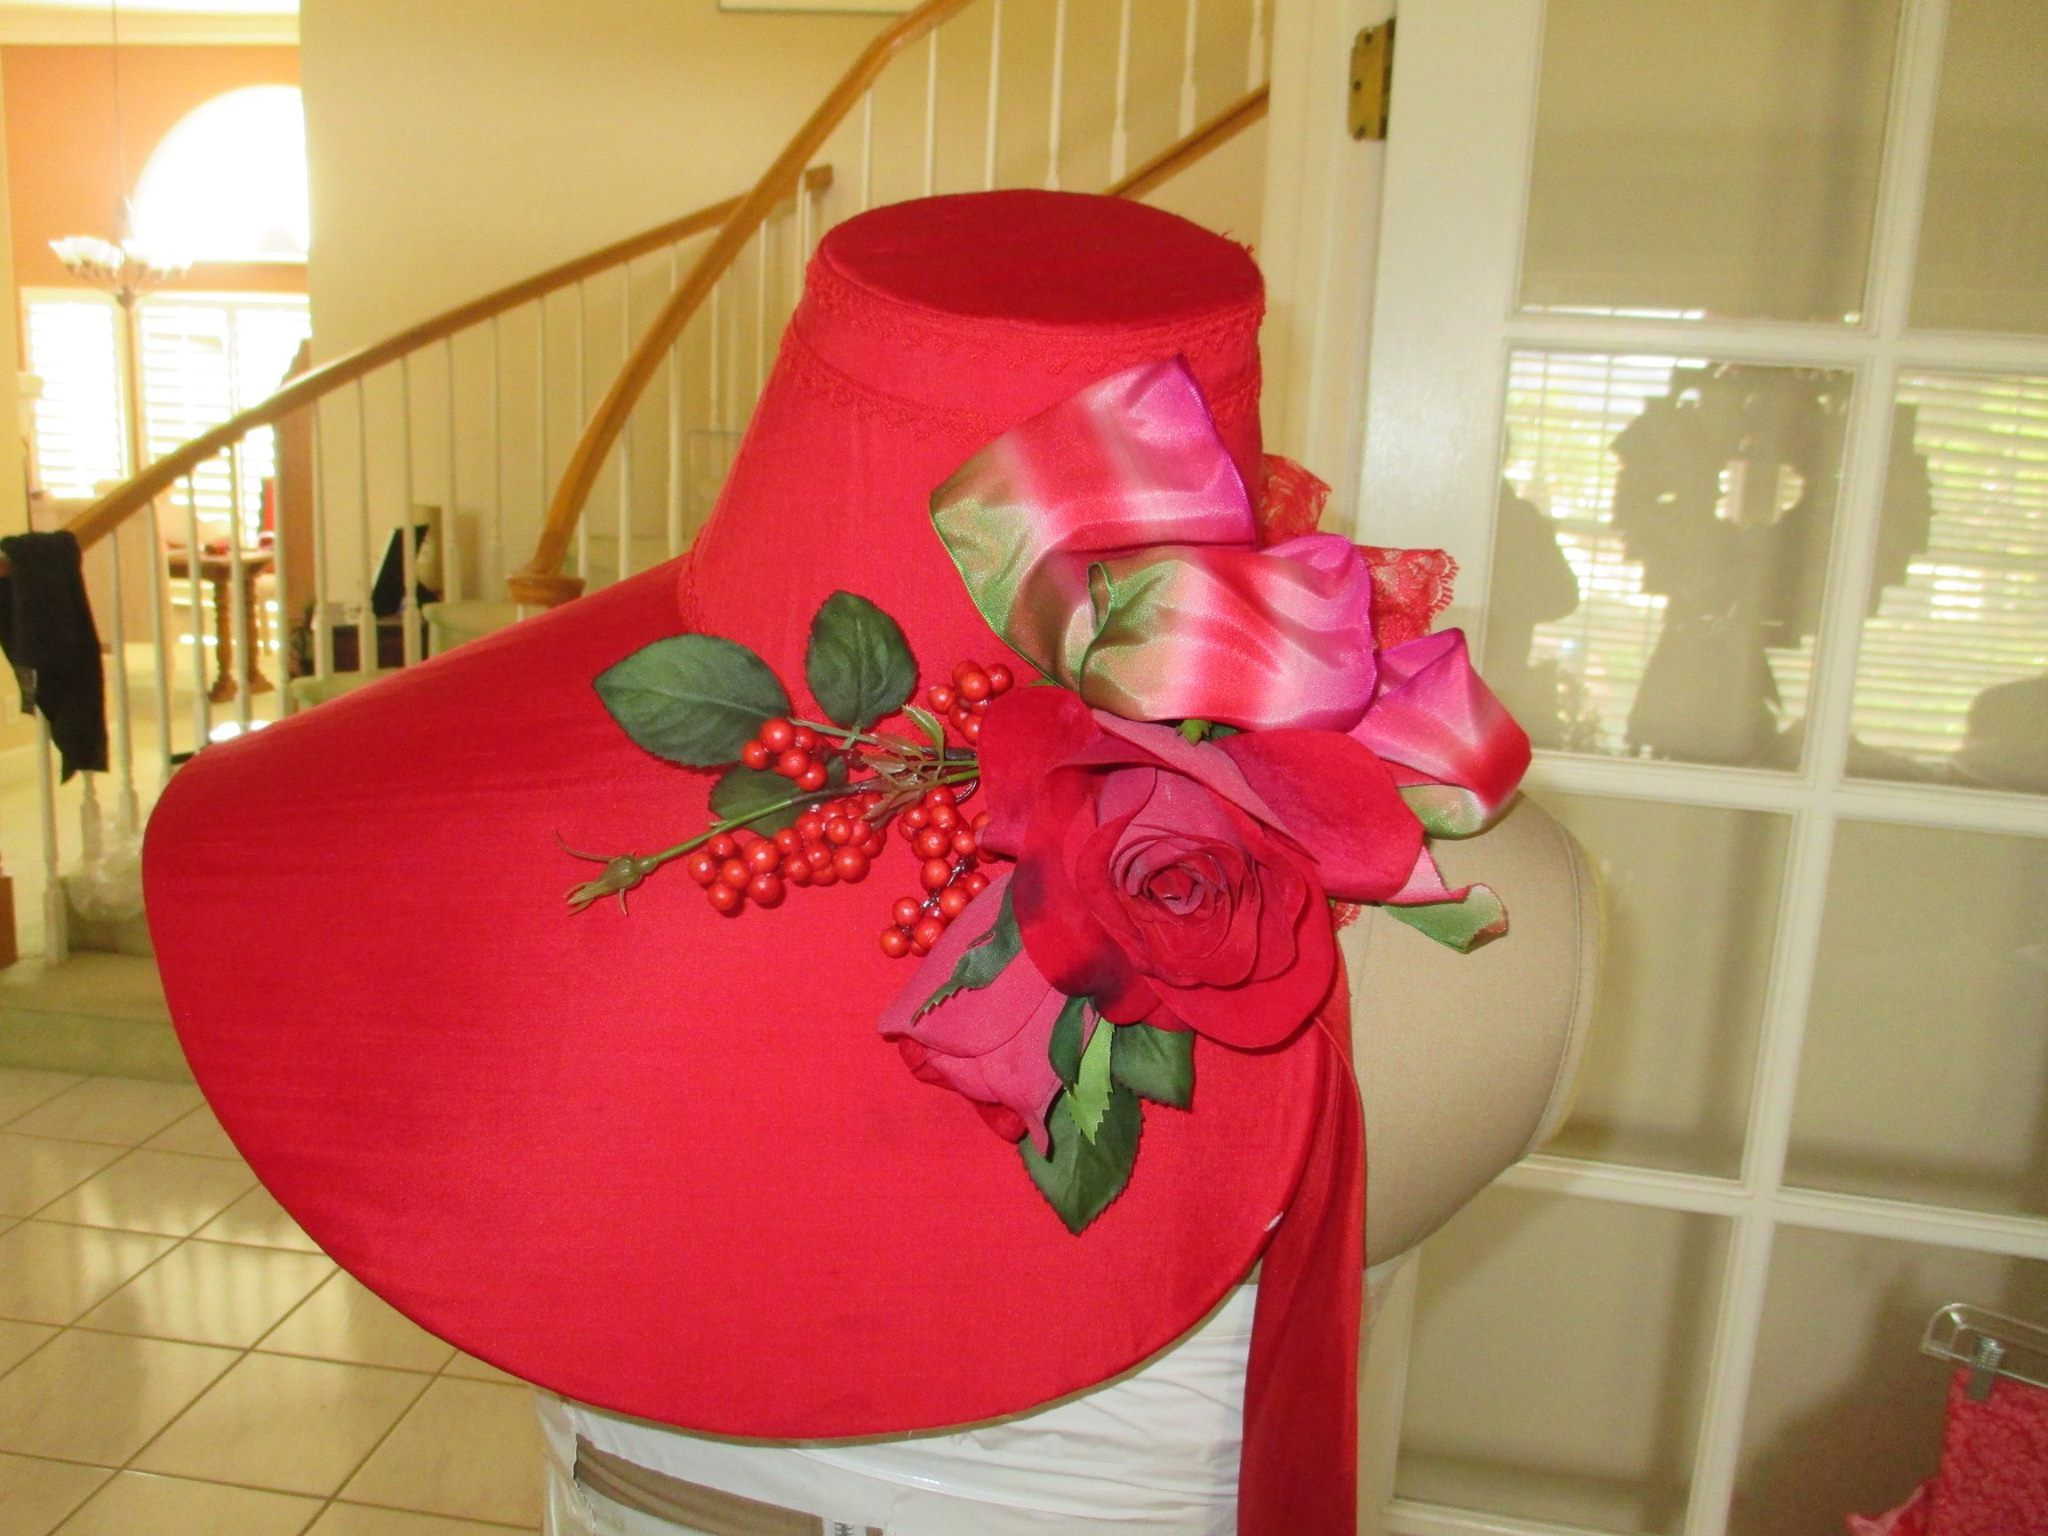 Romantic Era Bonnet Online Class | Romantic, The o\'jays and Products